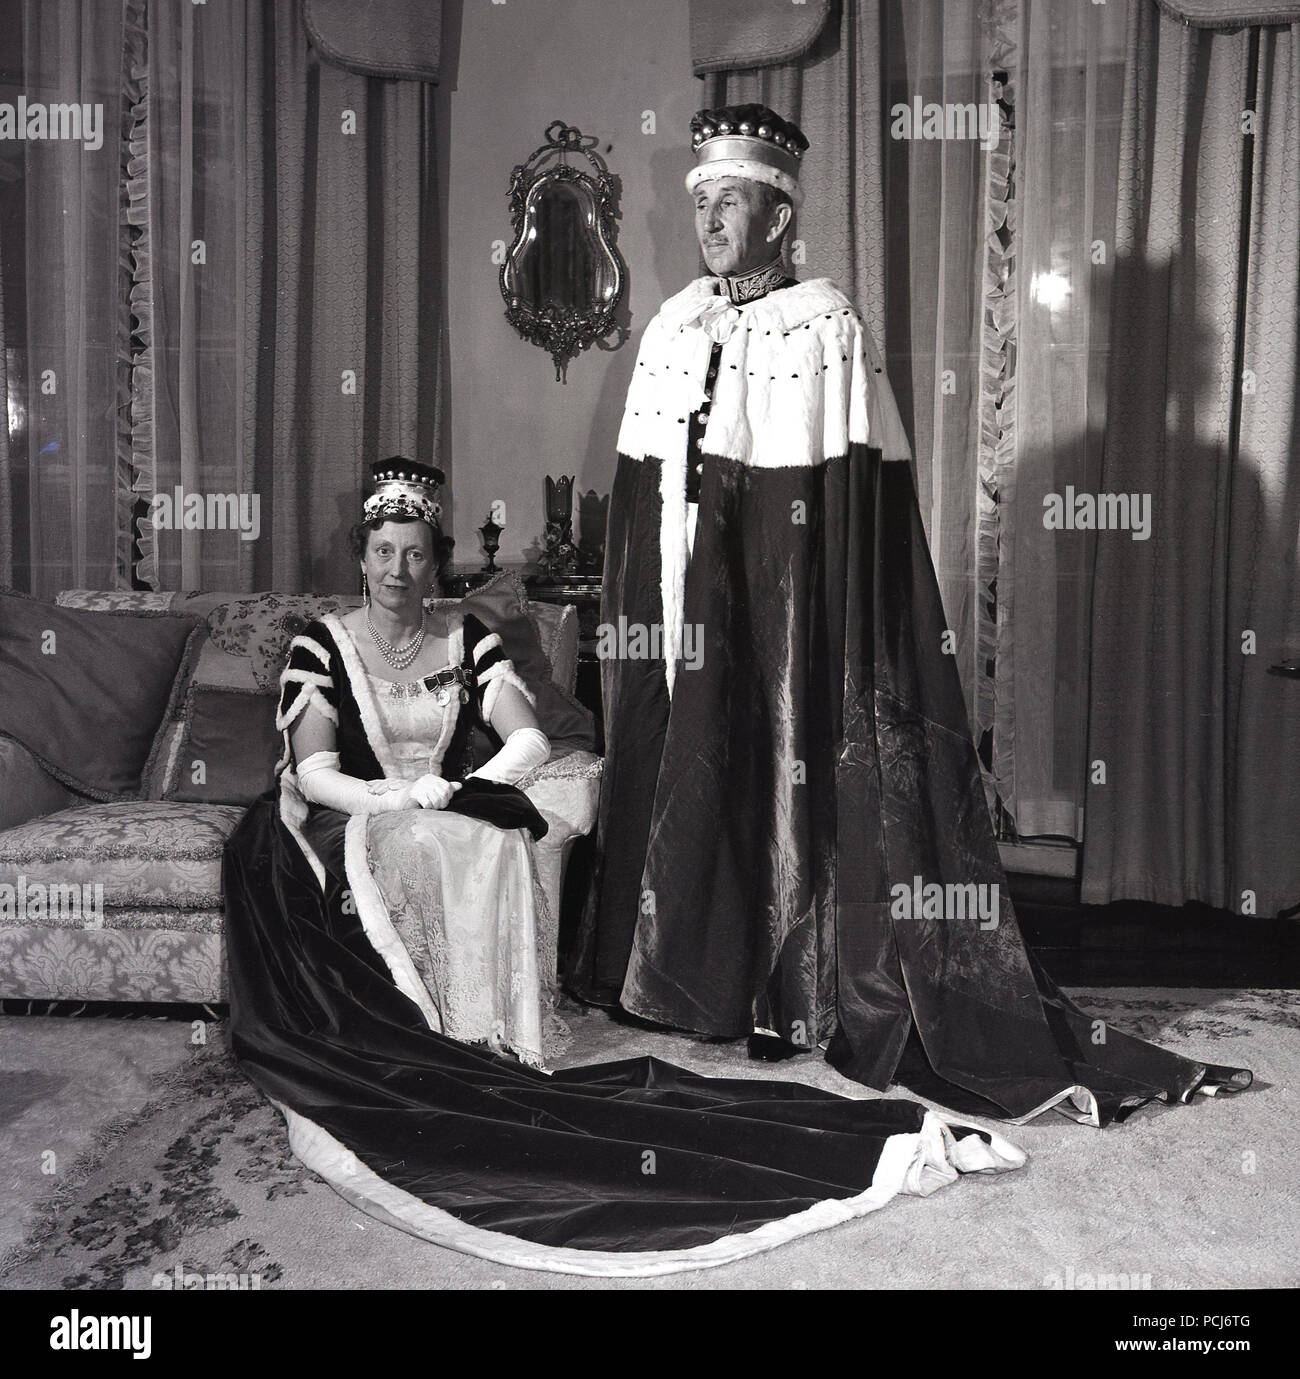 1950s, Sir Basil Brooke, 5th Baronet, with his wife, wearing state ceremonial gowns. The third Prime Minister of Northern Ireland, holding office from 1943 to 1963, he was the country's longest-serving and established a UK record by holding government office continously for 33 years. He was awarded the military cross in 1916. - Stock Image